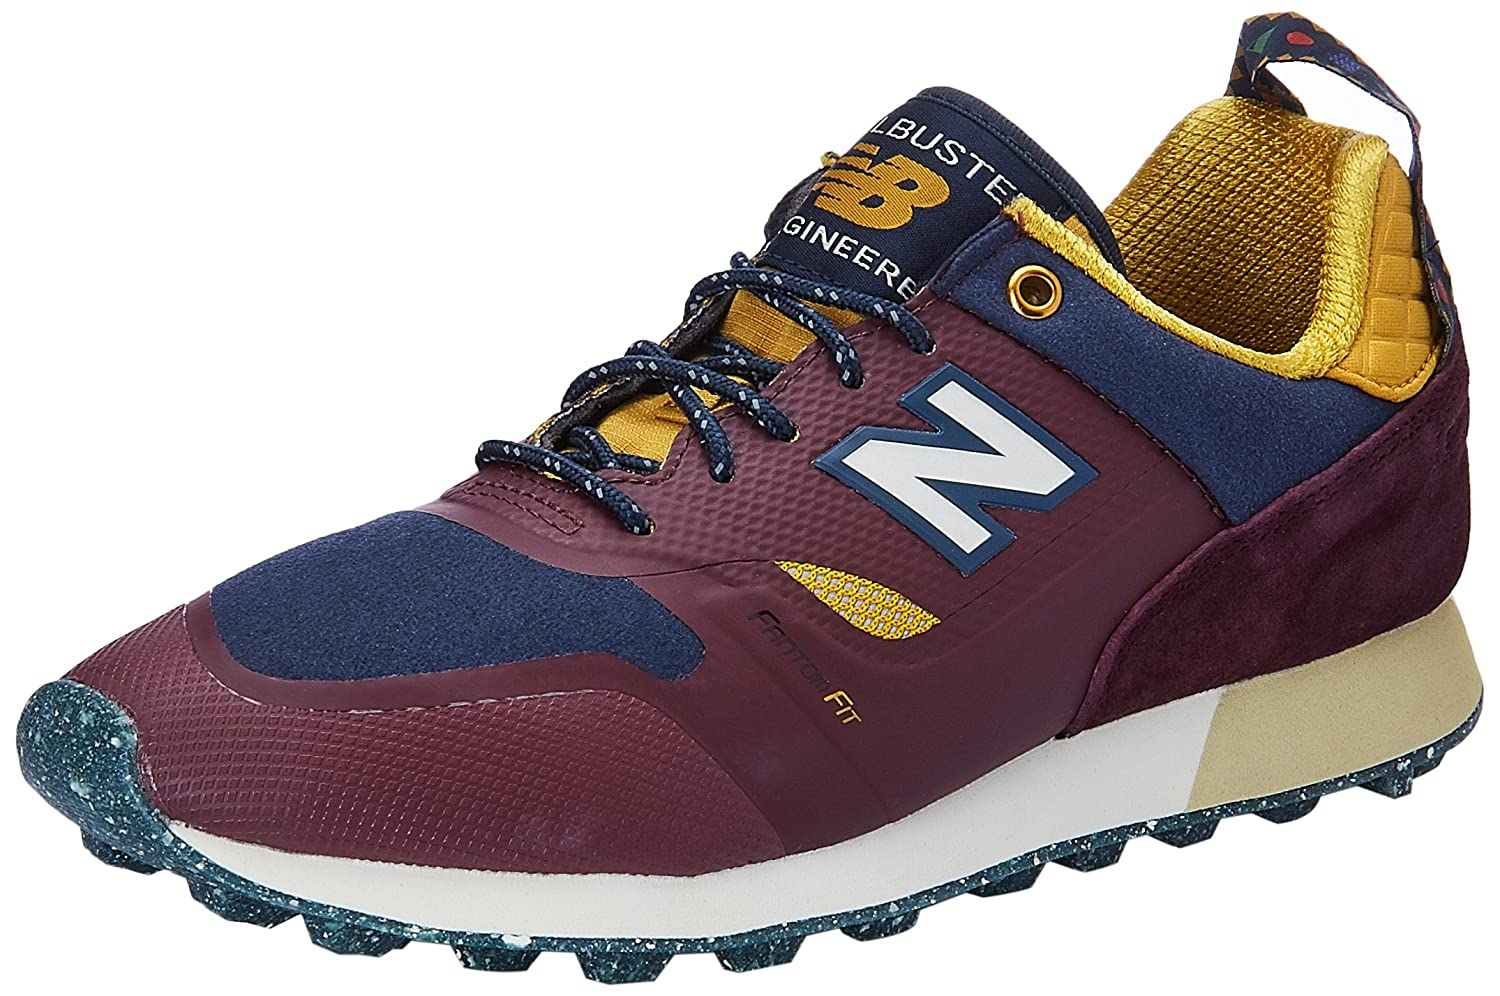 New Balance Men's Trailbuster RE-Engineered B01N53DGXB 12 D(M) US|Supernova Red